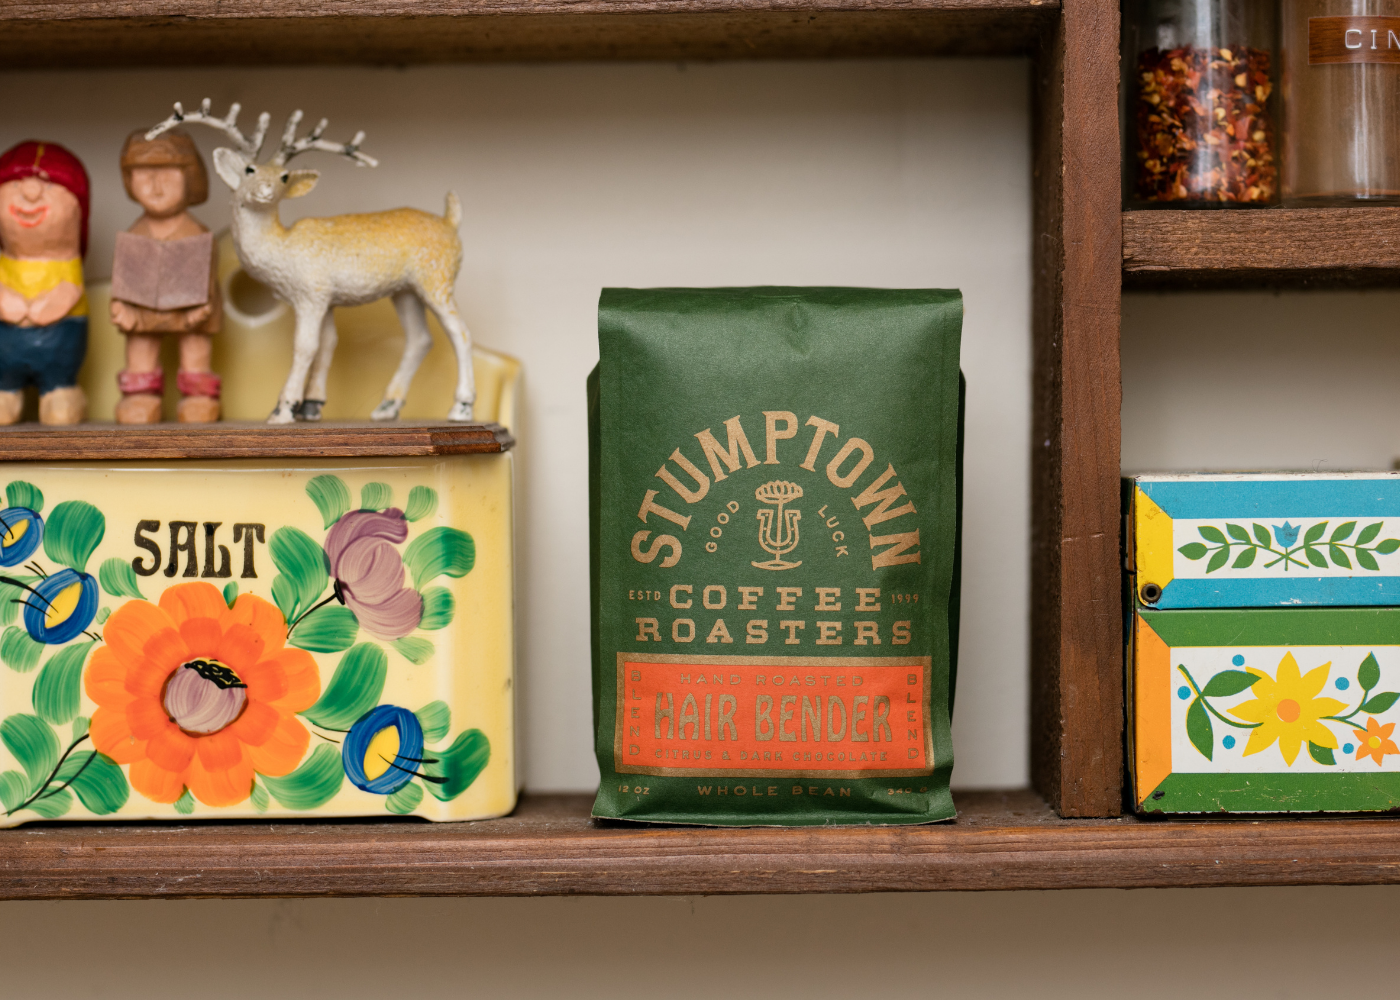 bag of Stumptown Hairbender coffee on a shelf.